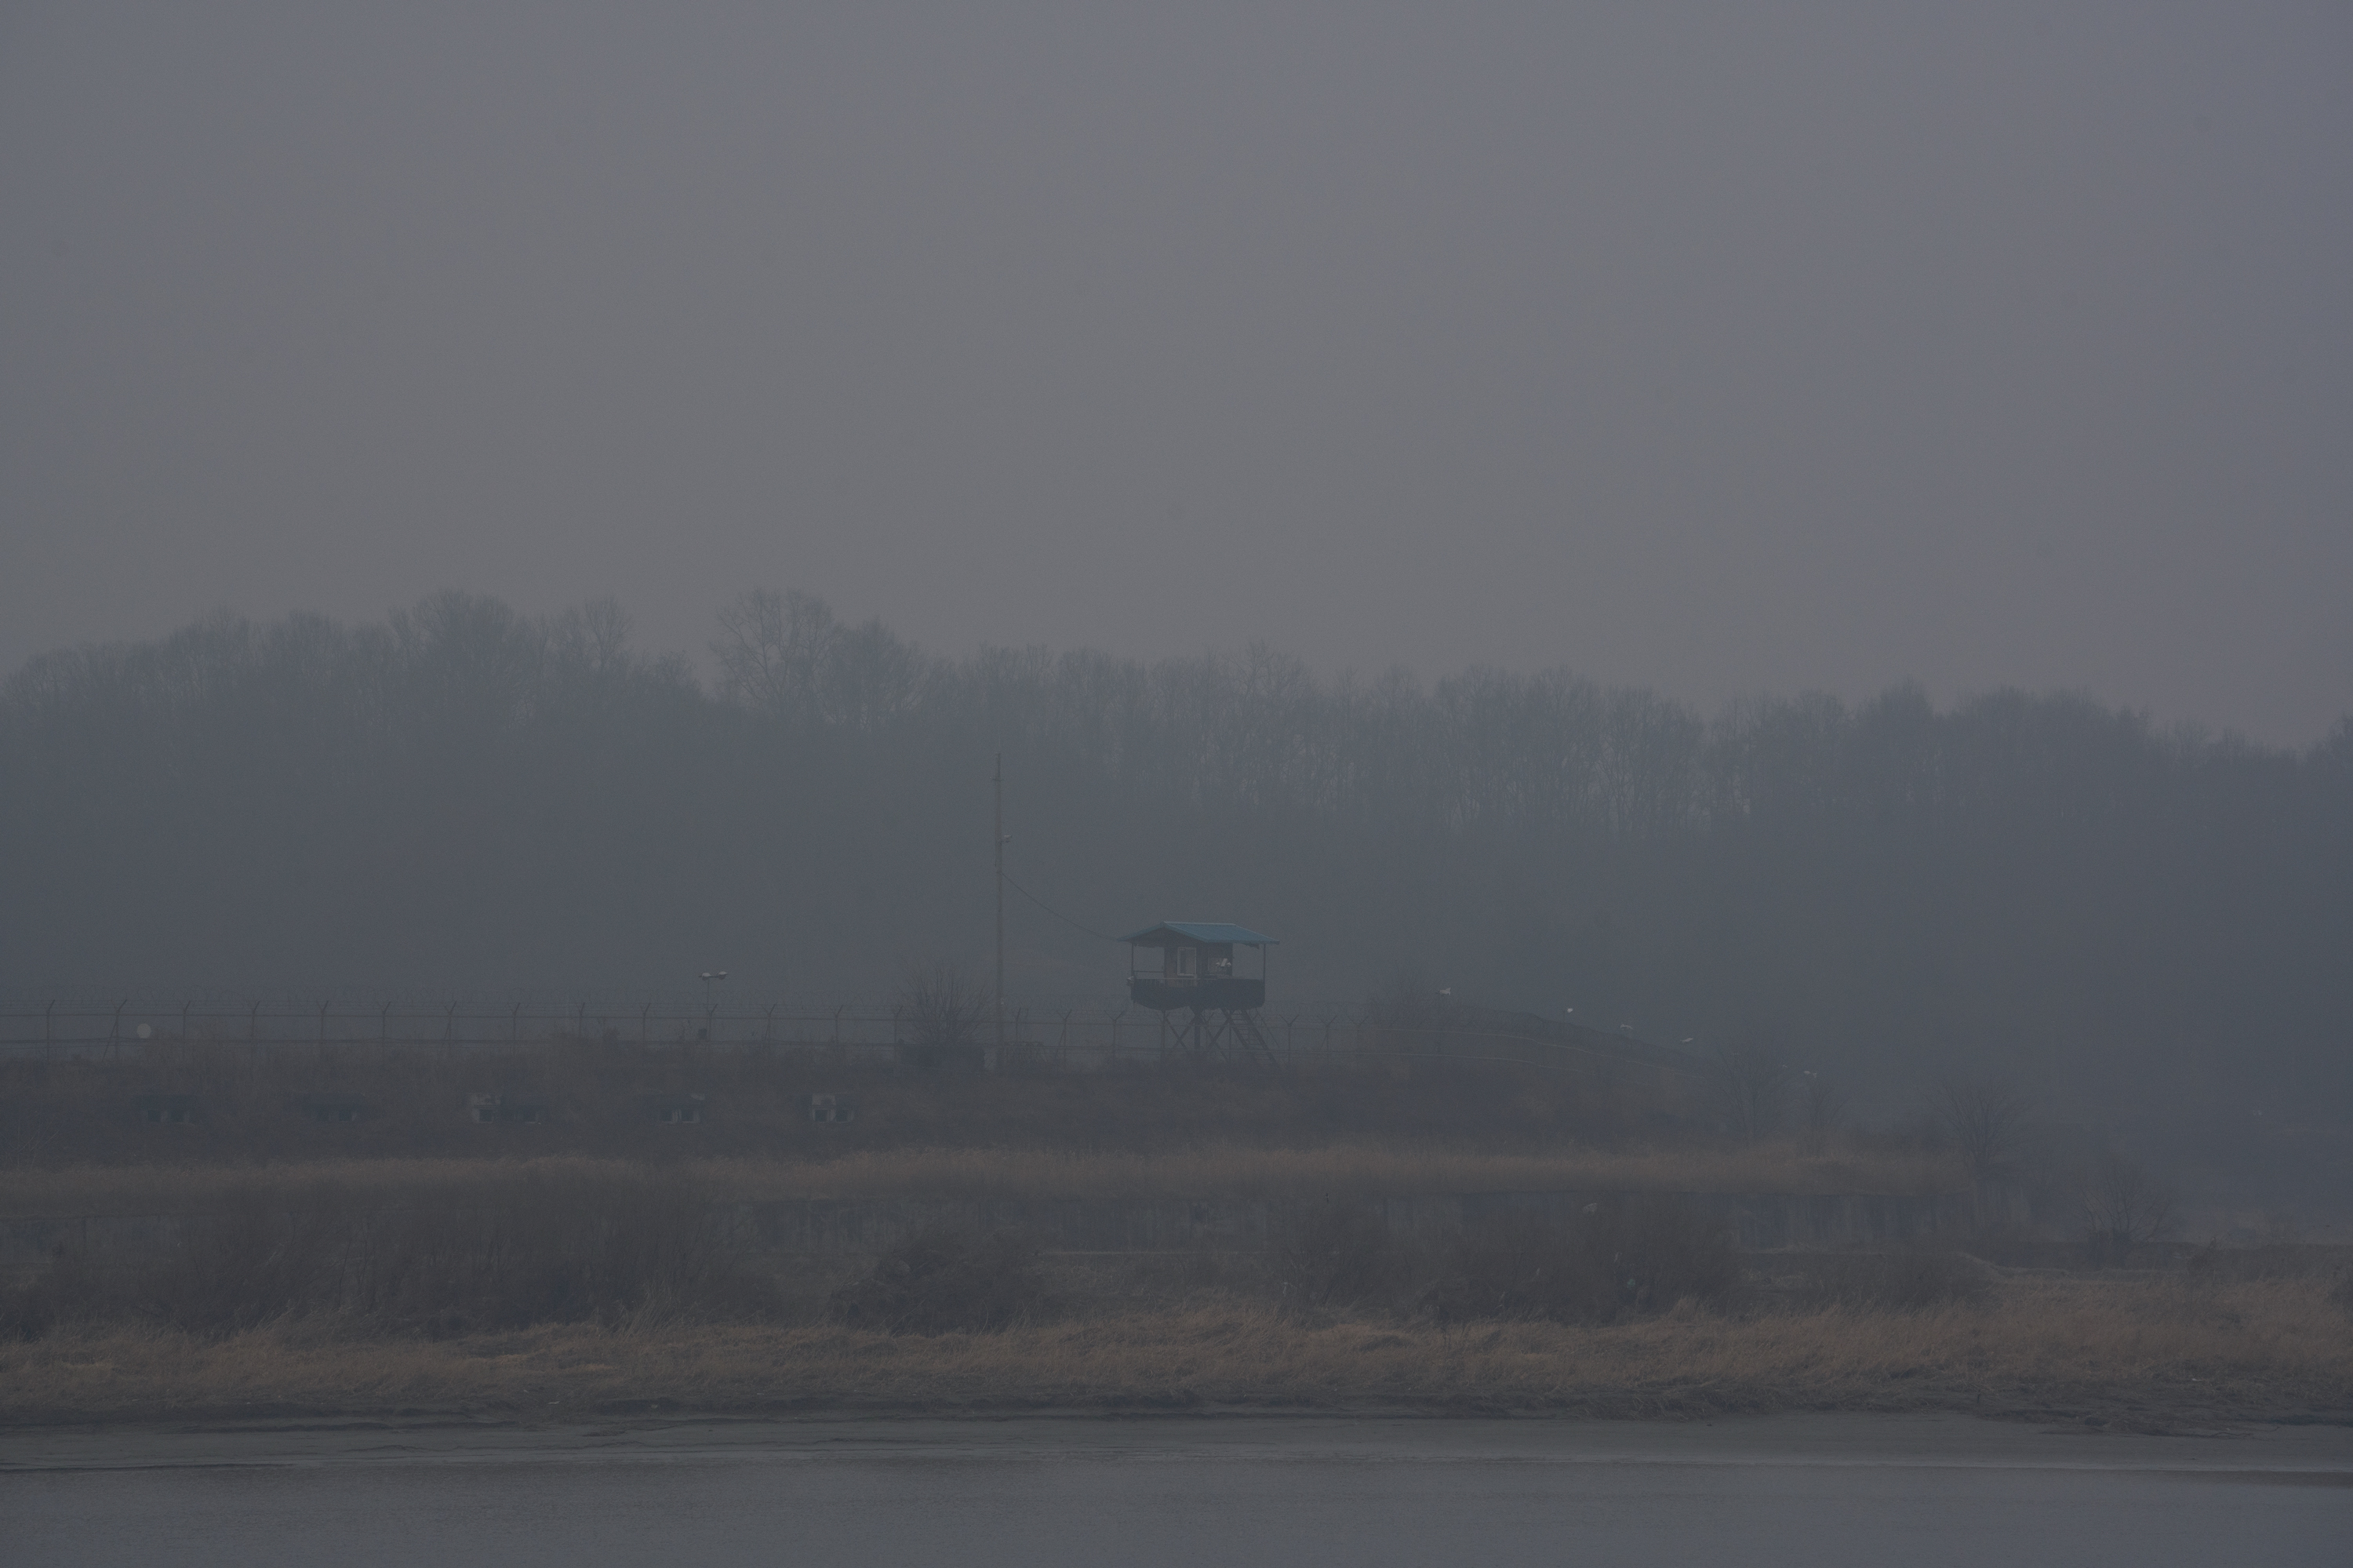 In Korean DMZ, Wildlife Thrives. Some Conservationists Worry Peace Could Disrupt It